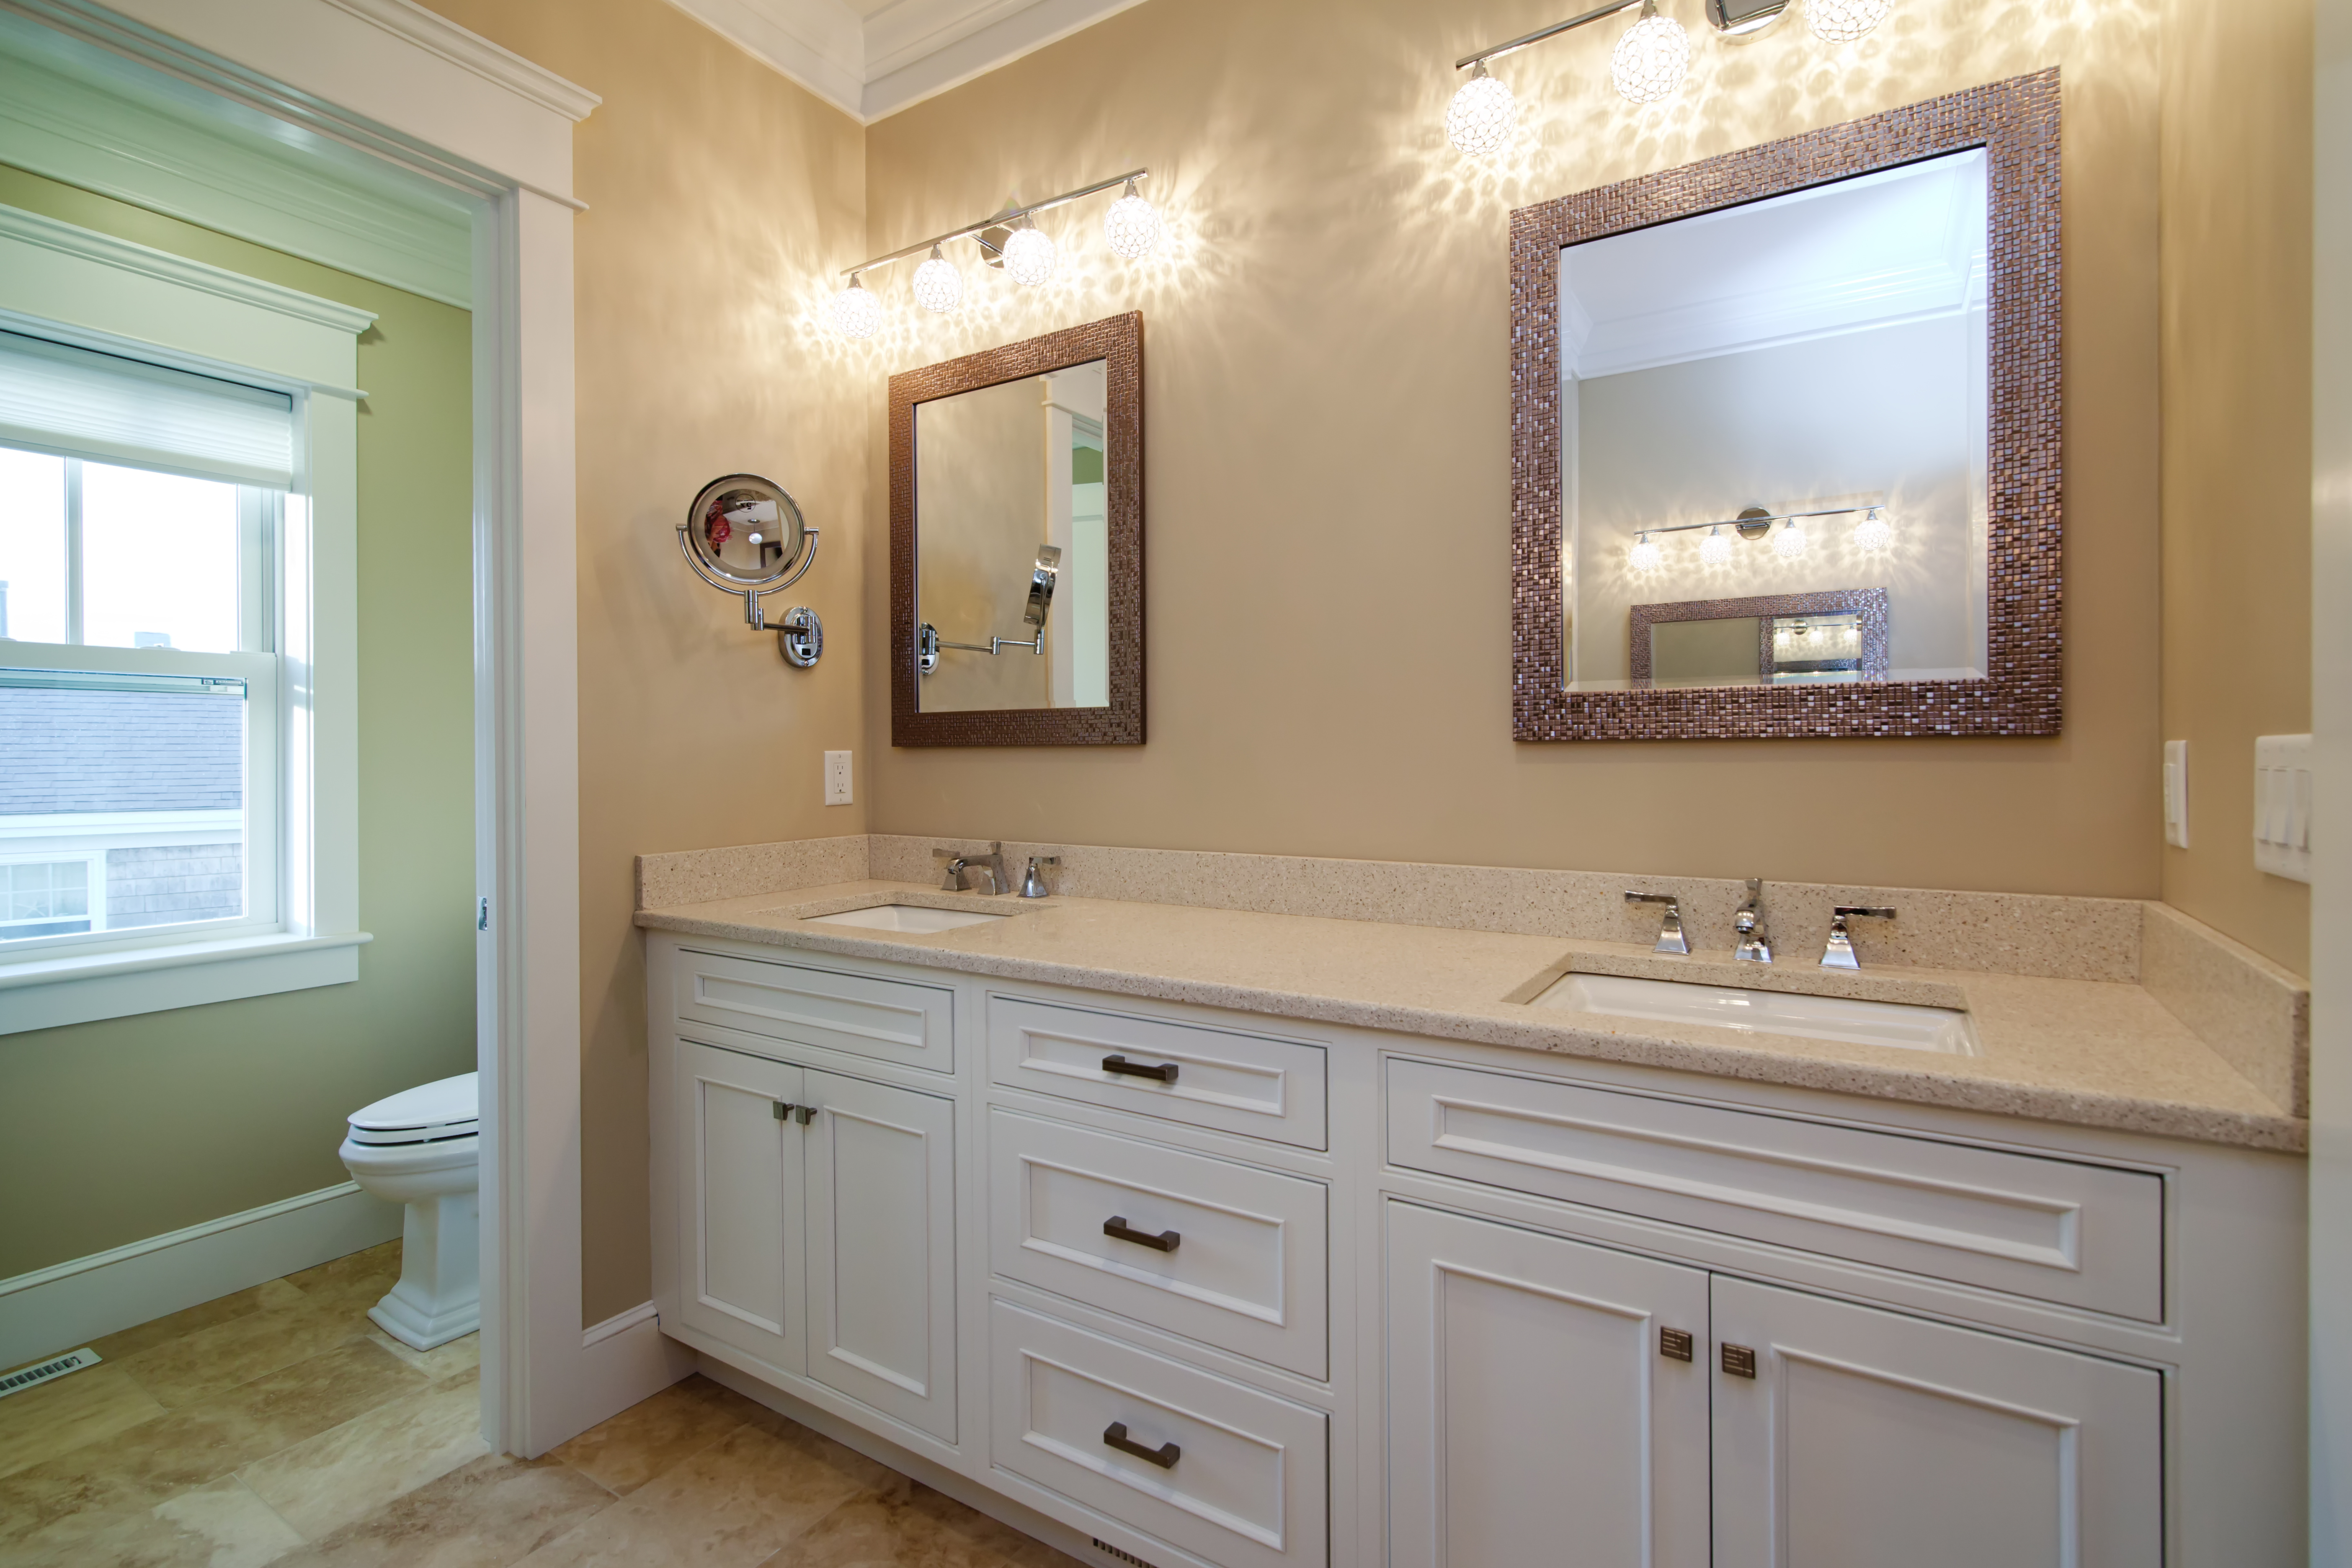 Bathroom Remodel His and Hers Sinks